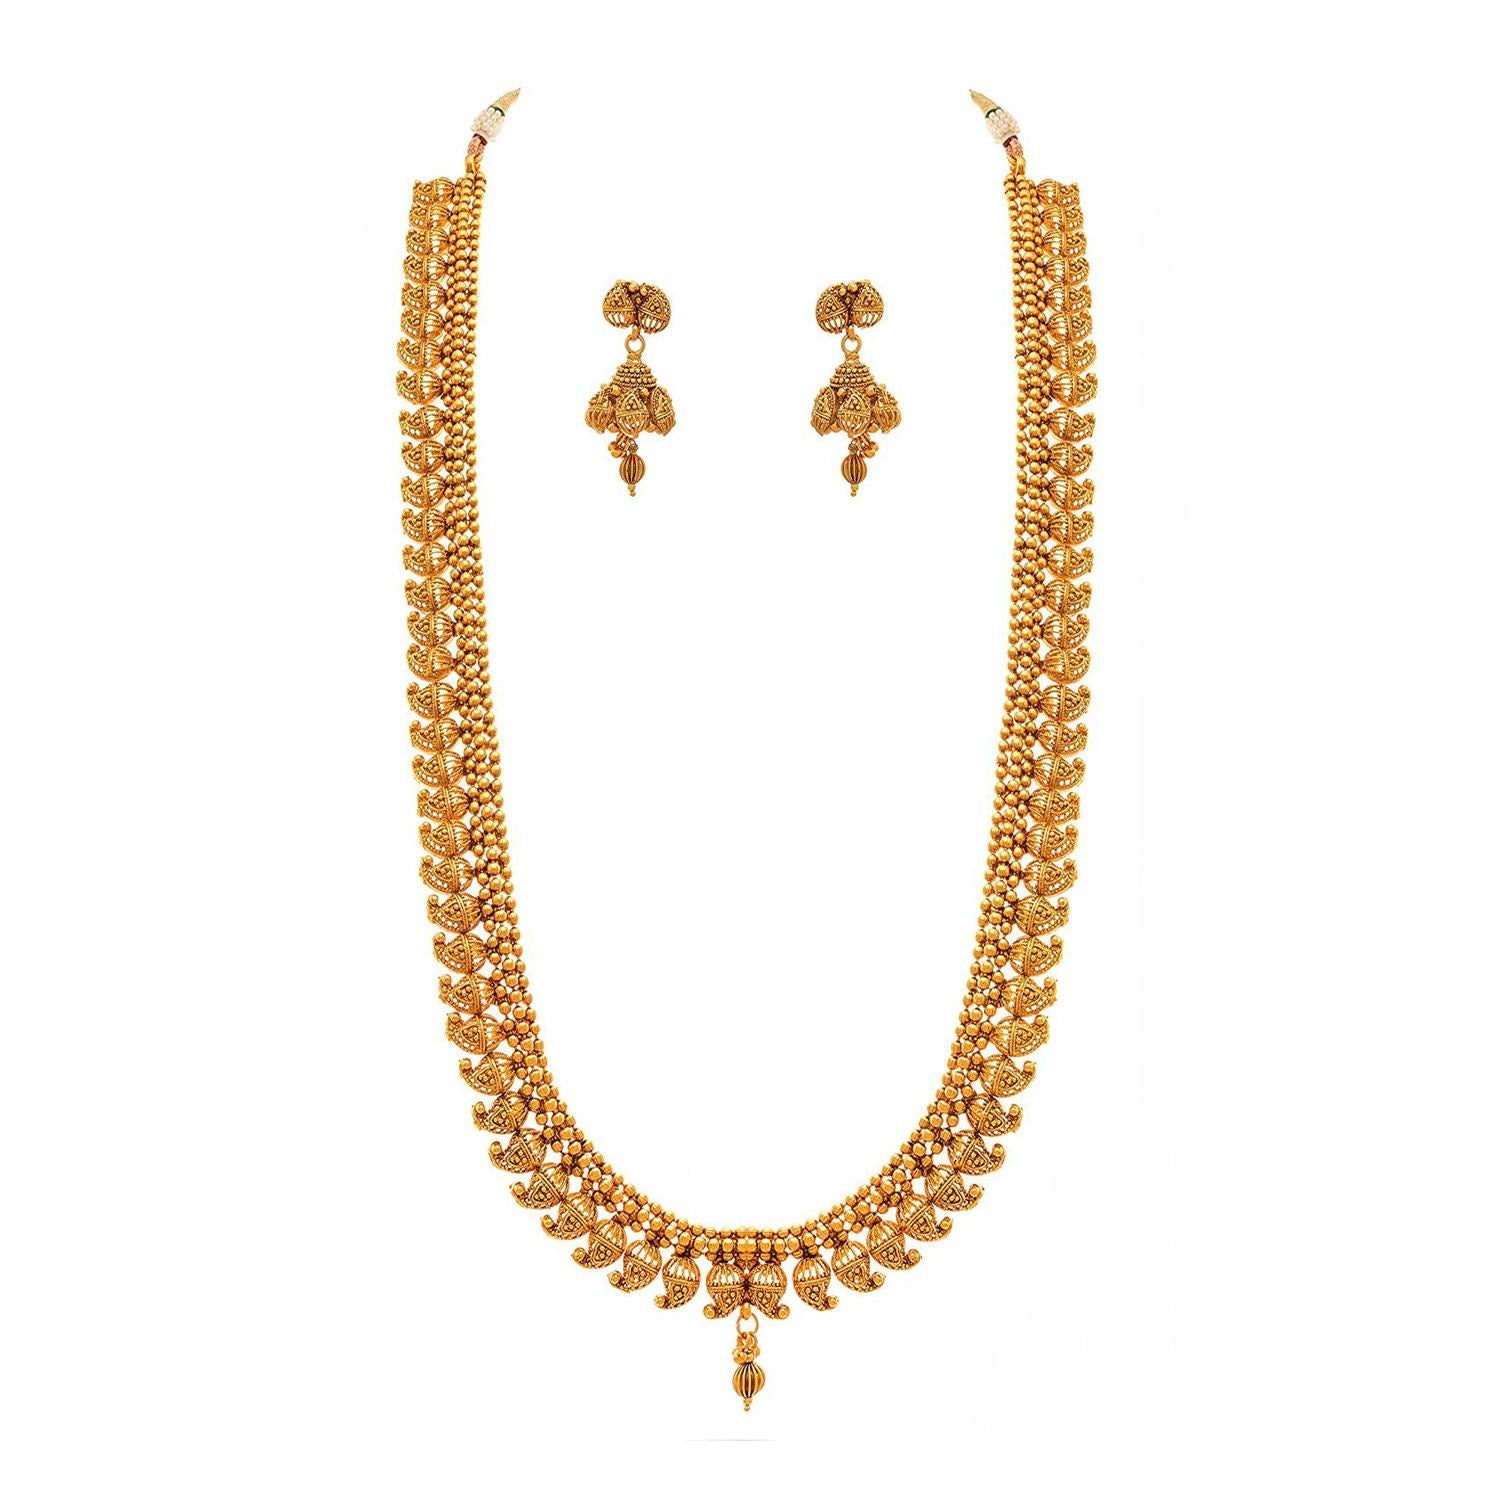 Traditional Ethnic One Gram Gold Plated Kaerie Long Necklace Set With Earring For Women